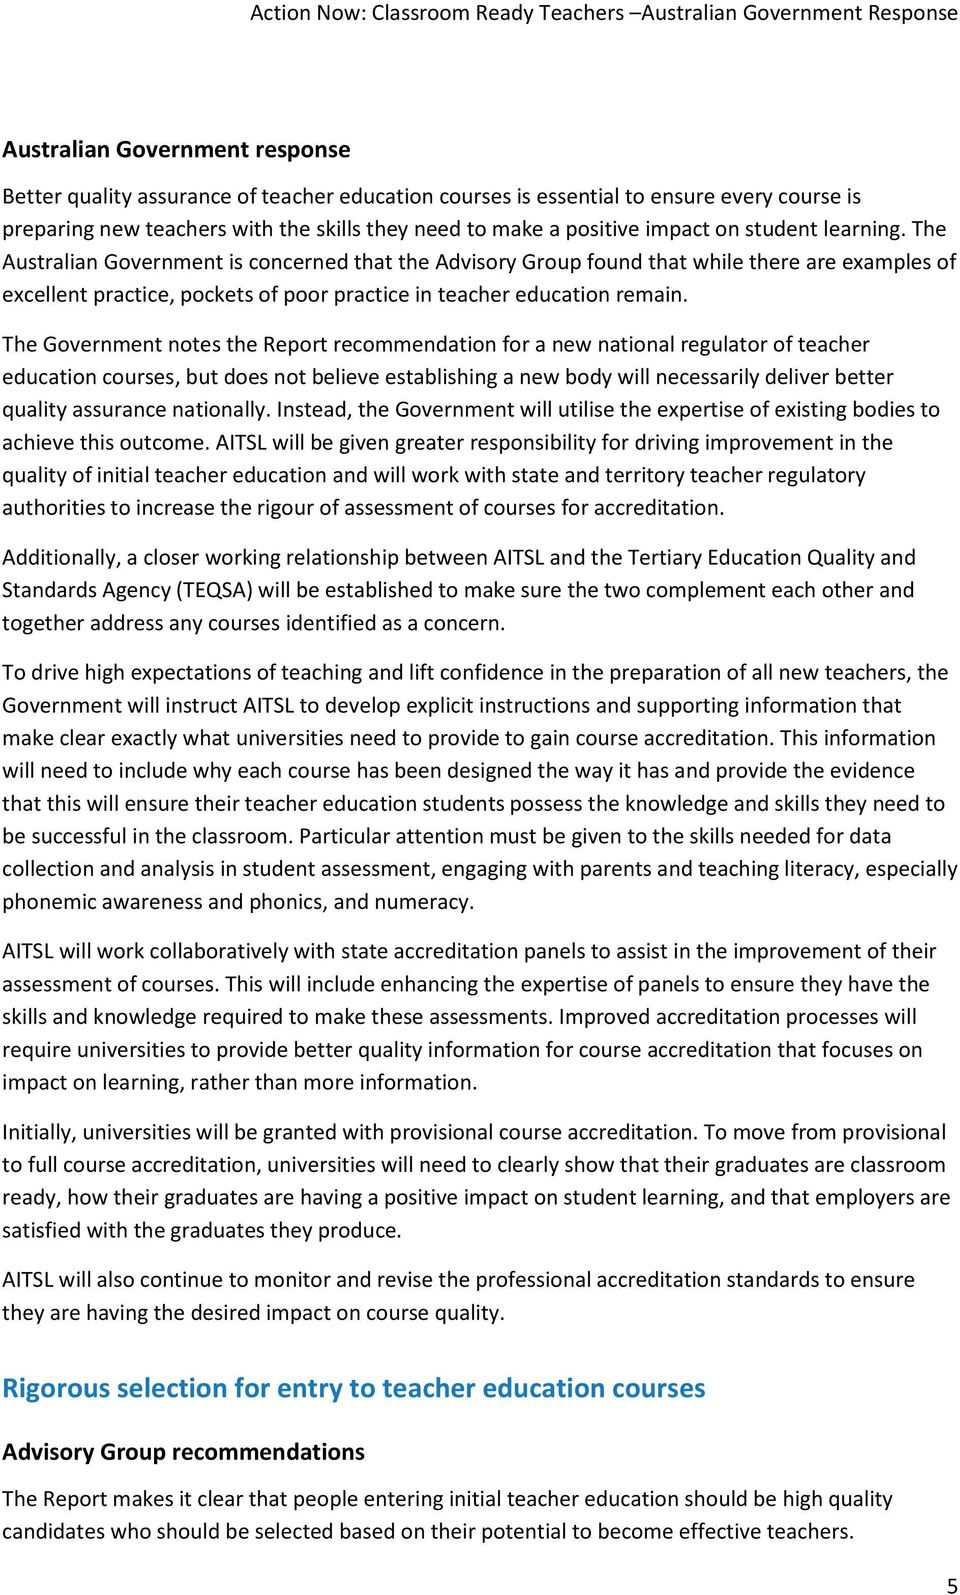 The Government notes the Report recommendation for a new national regulator of teacher education courses, but does not believe establishing a new body will necessarily deliver better quality